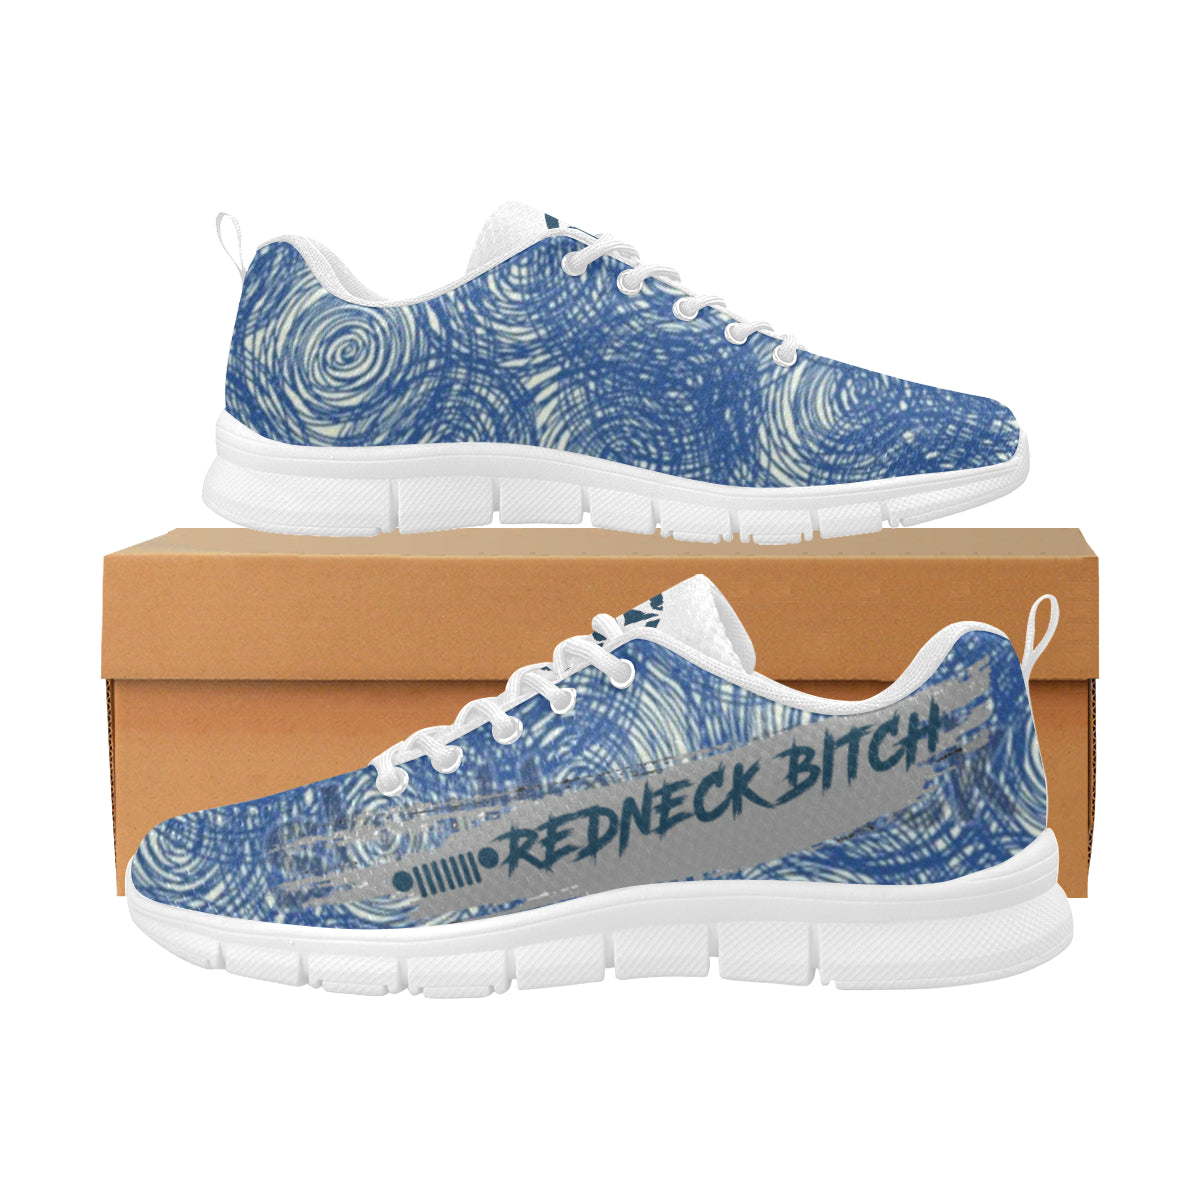 Redneck jeep Women's Breathable Running Shoes (Model 055).